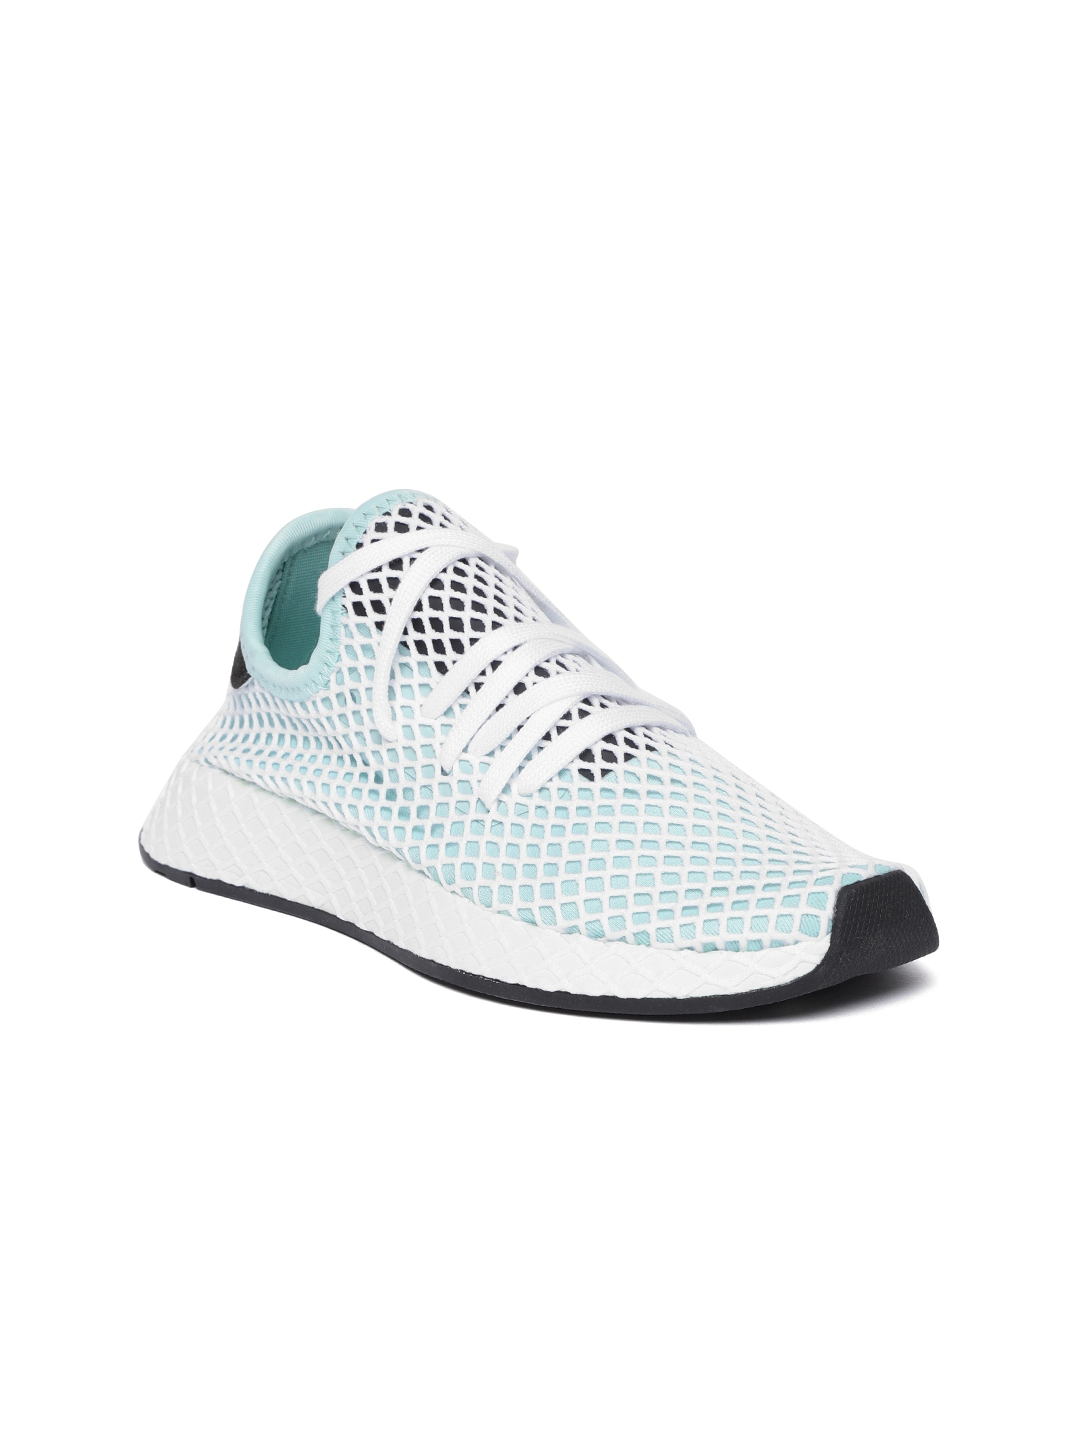 42403418fe22f Buy Adidas Originals Women Green   White DEERUPT Running Shoes ...